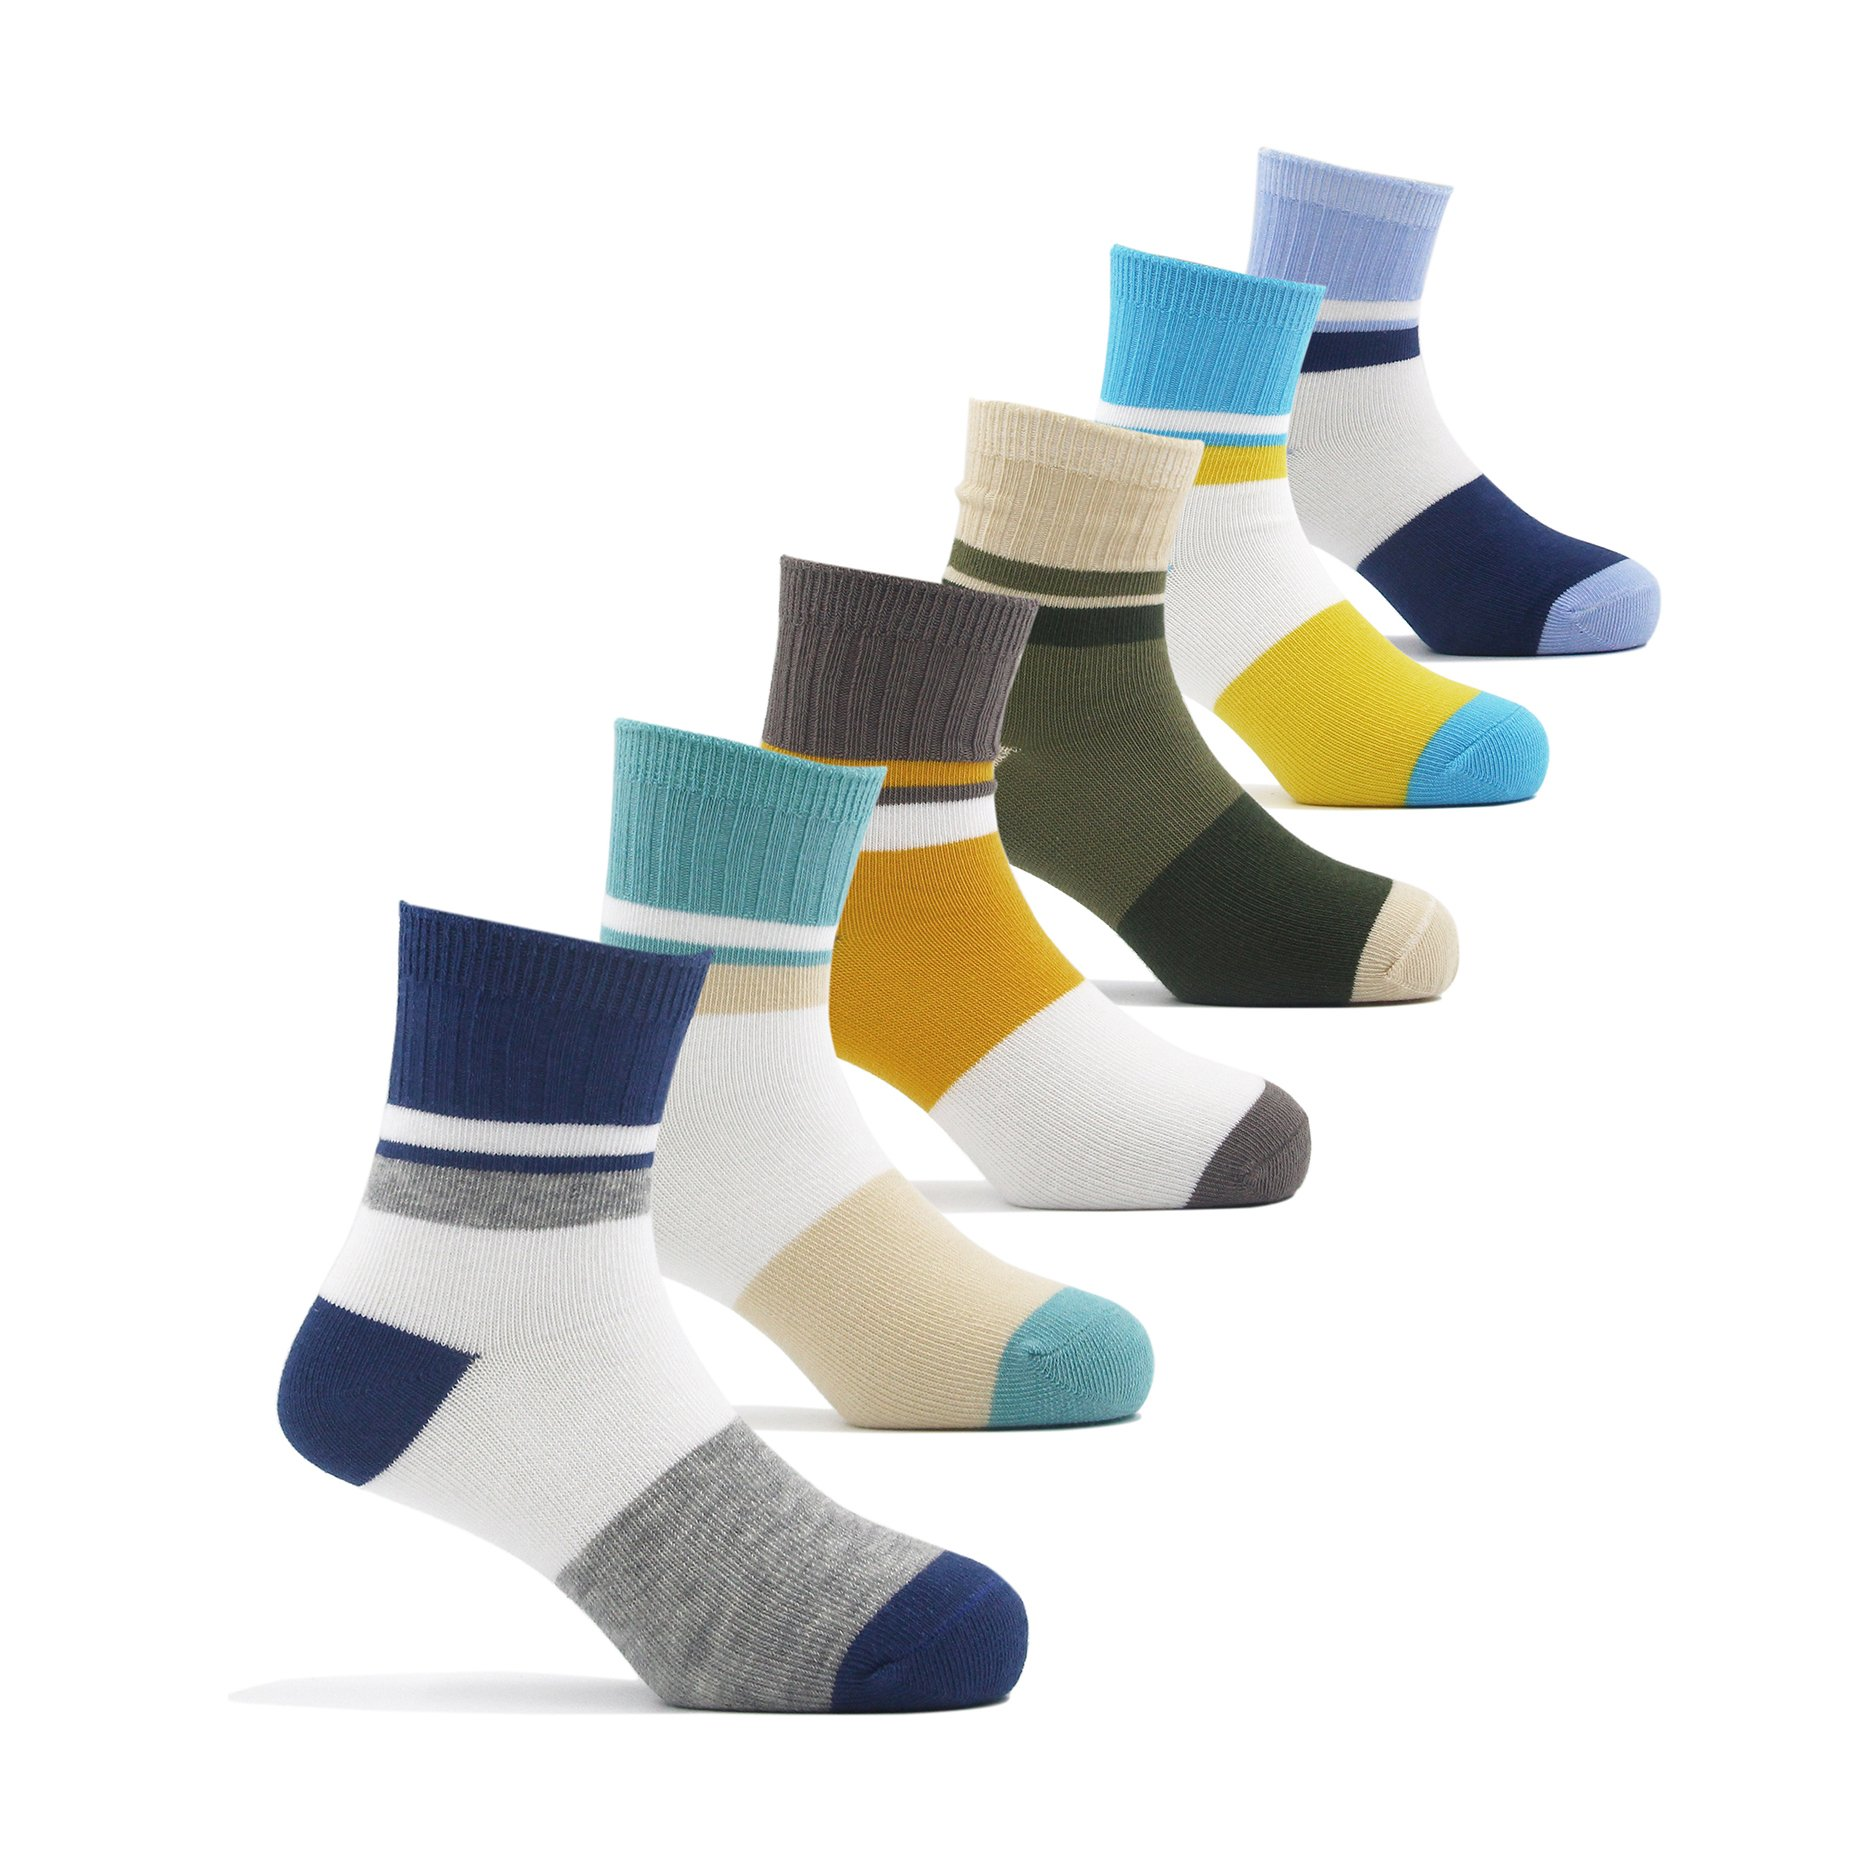 Big Boys Cotton Seamless Socks Crew Atheletic Sport Socks for Kids 6 Pack 10T/11T/12T/13T by HowJoJo (Image #1)